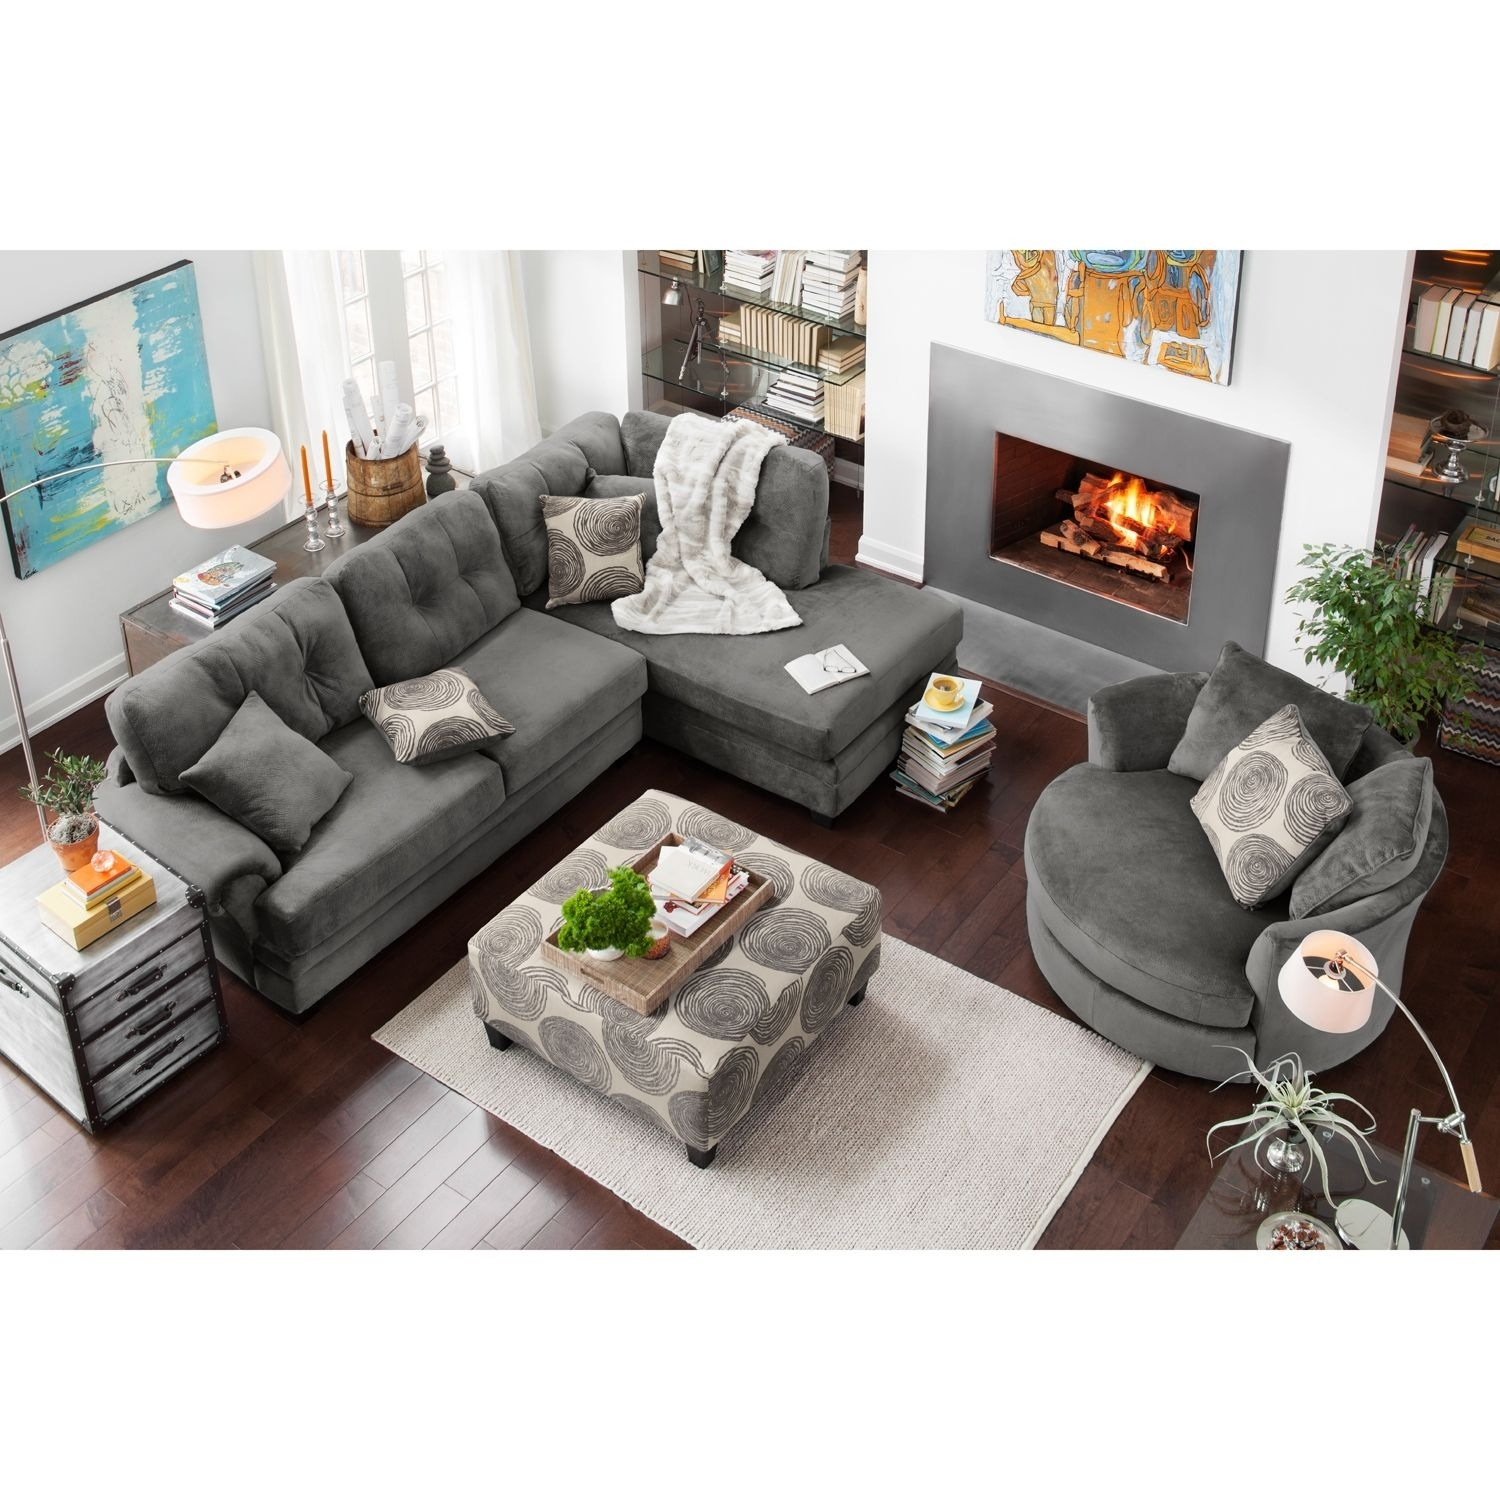 Cordelle 2 Piece Right Facing Chaise Sectional – Gray | City Throughout Value City Sectional Sofas (View 8 of 10)